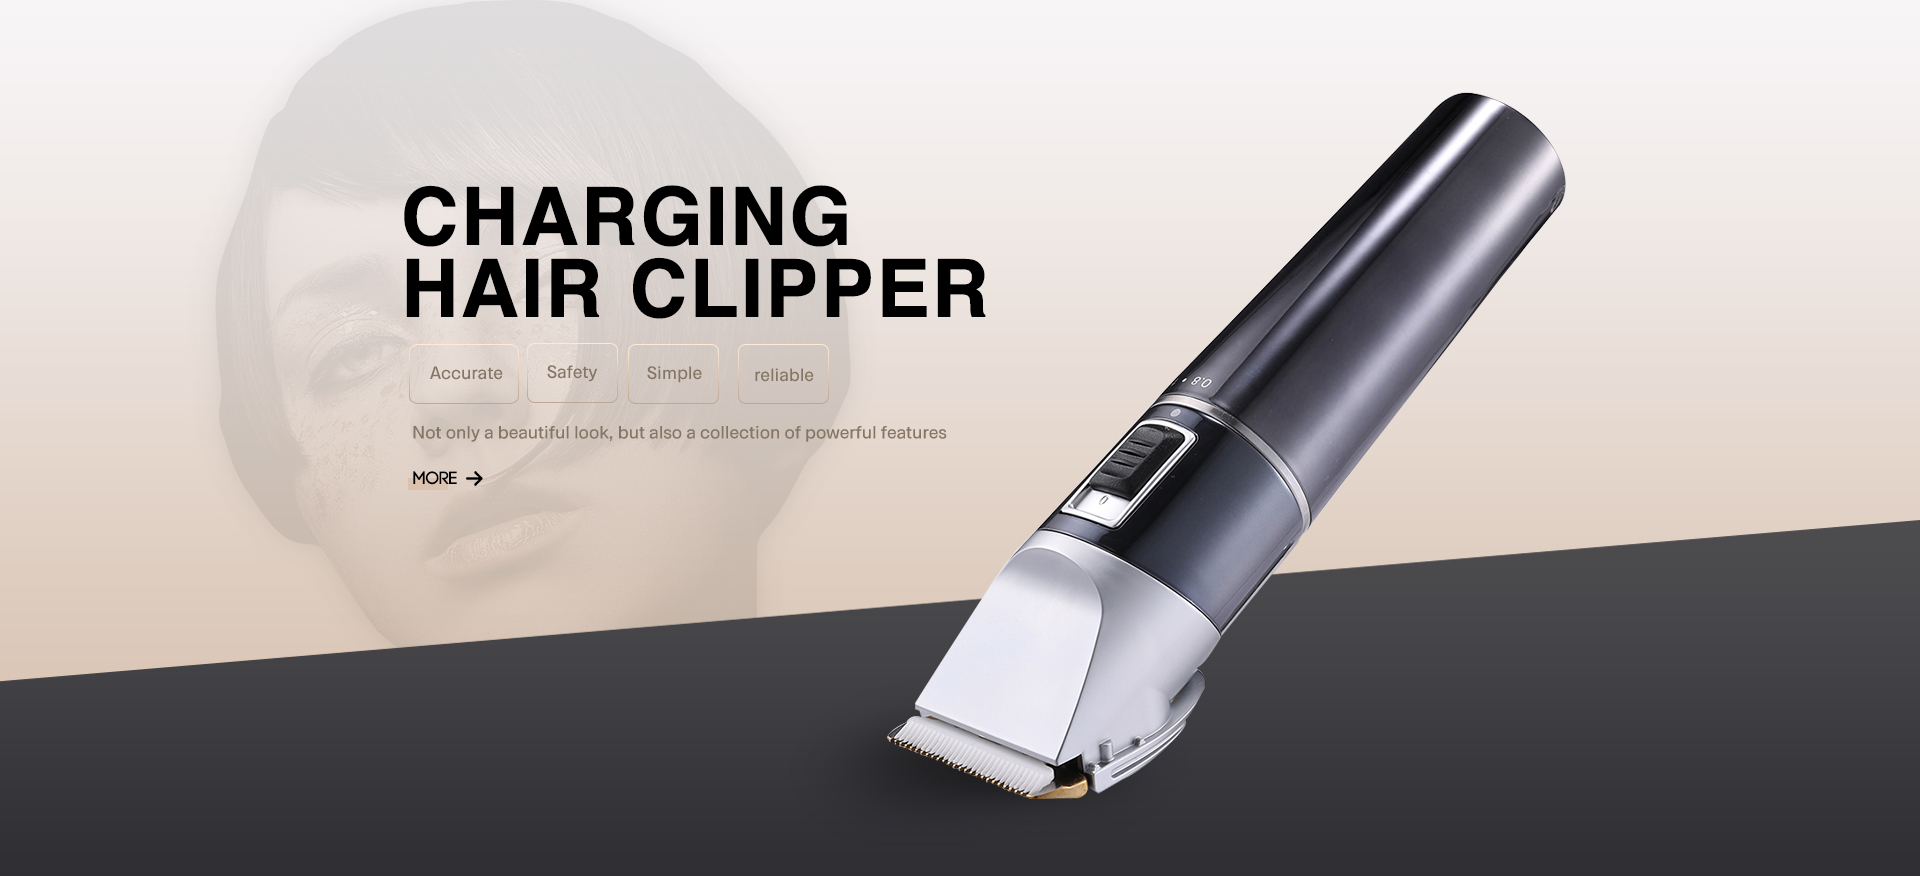 CHARGING  HAIR CLIPPER.jpg